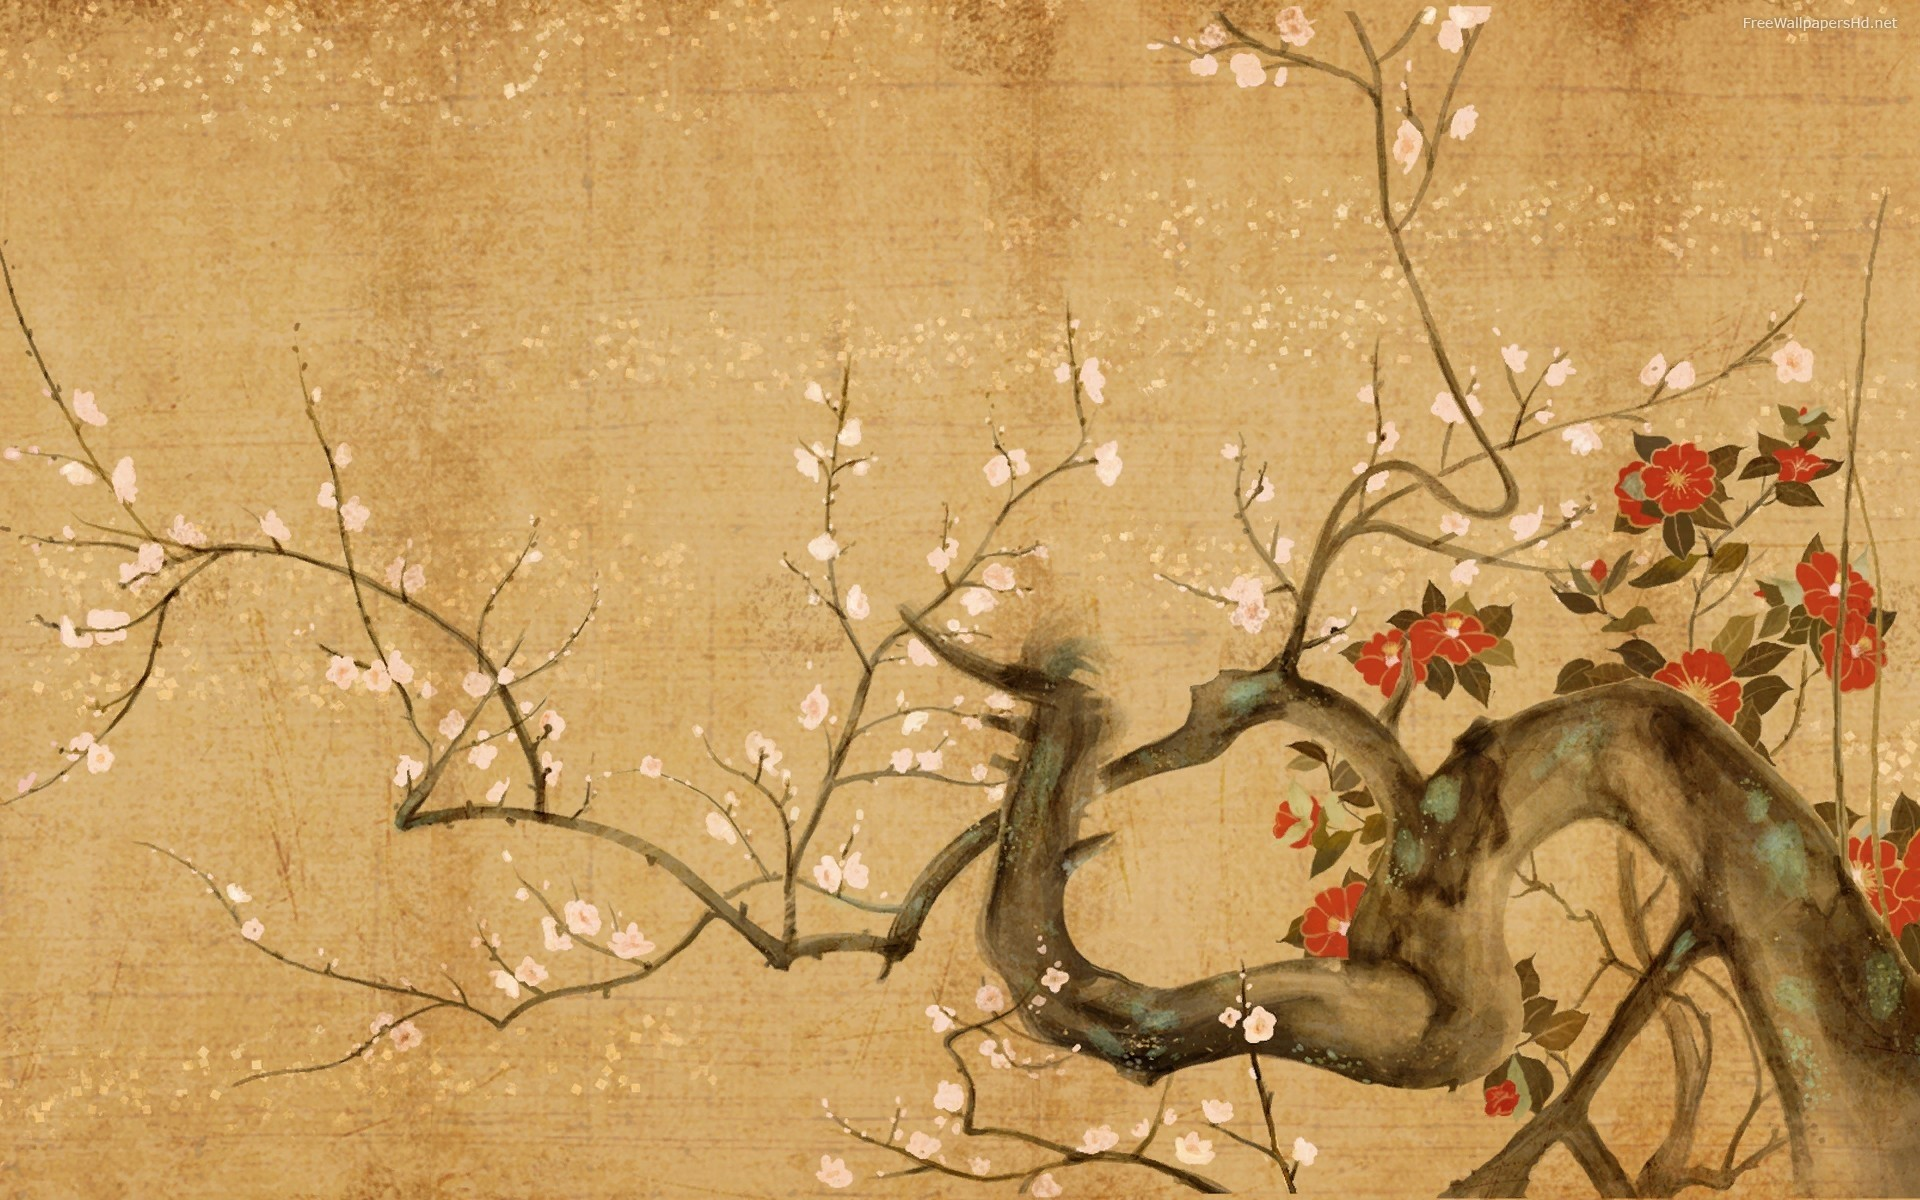 Res: 1920x1200, Traditional Japanese Art Wallpaper Hd Chinese Hd Backgrounds Wallpaper Of  Traditional Japanese Art Wallpaper Hd Japanese